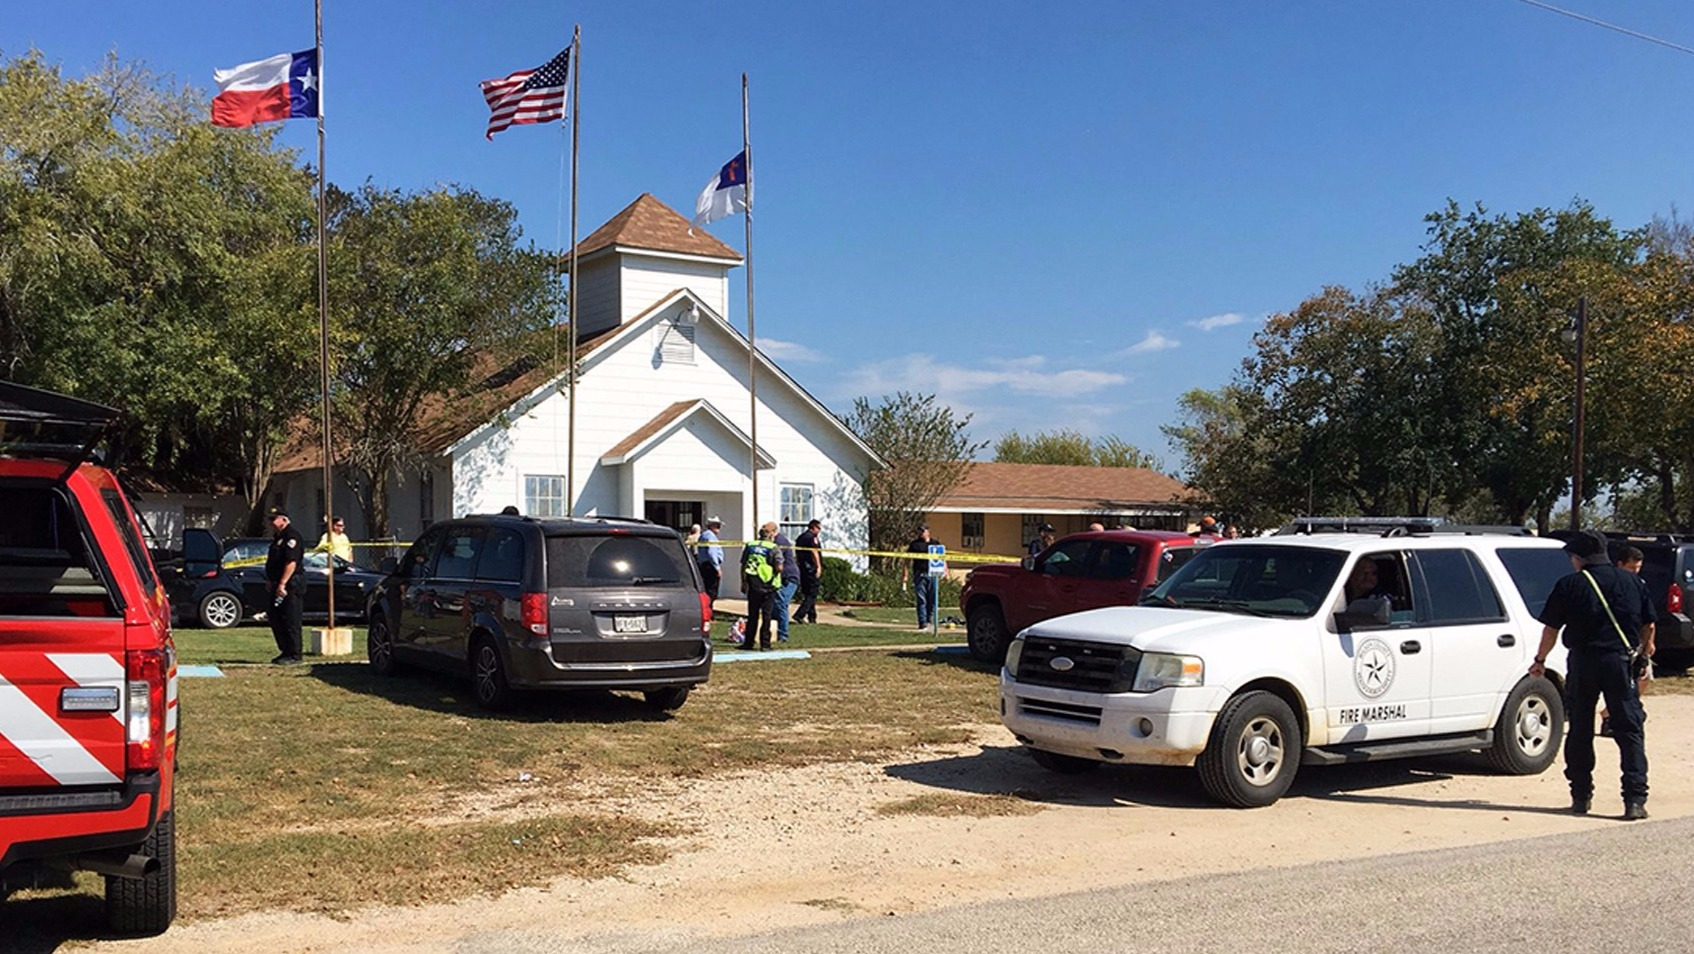 Gunman kills 20 worshippers at Texas church